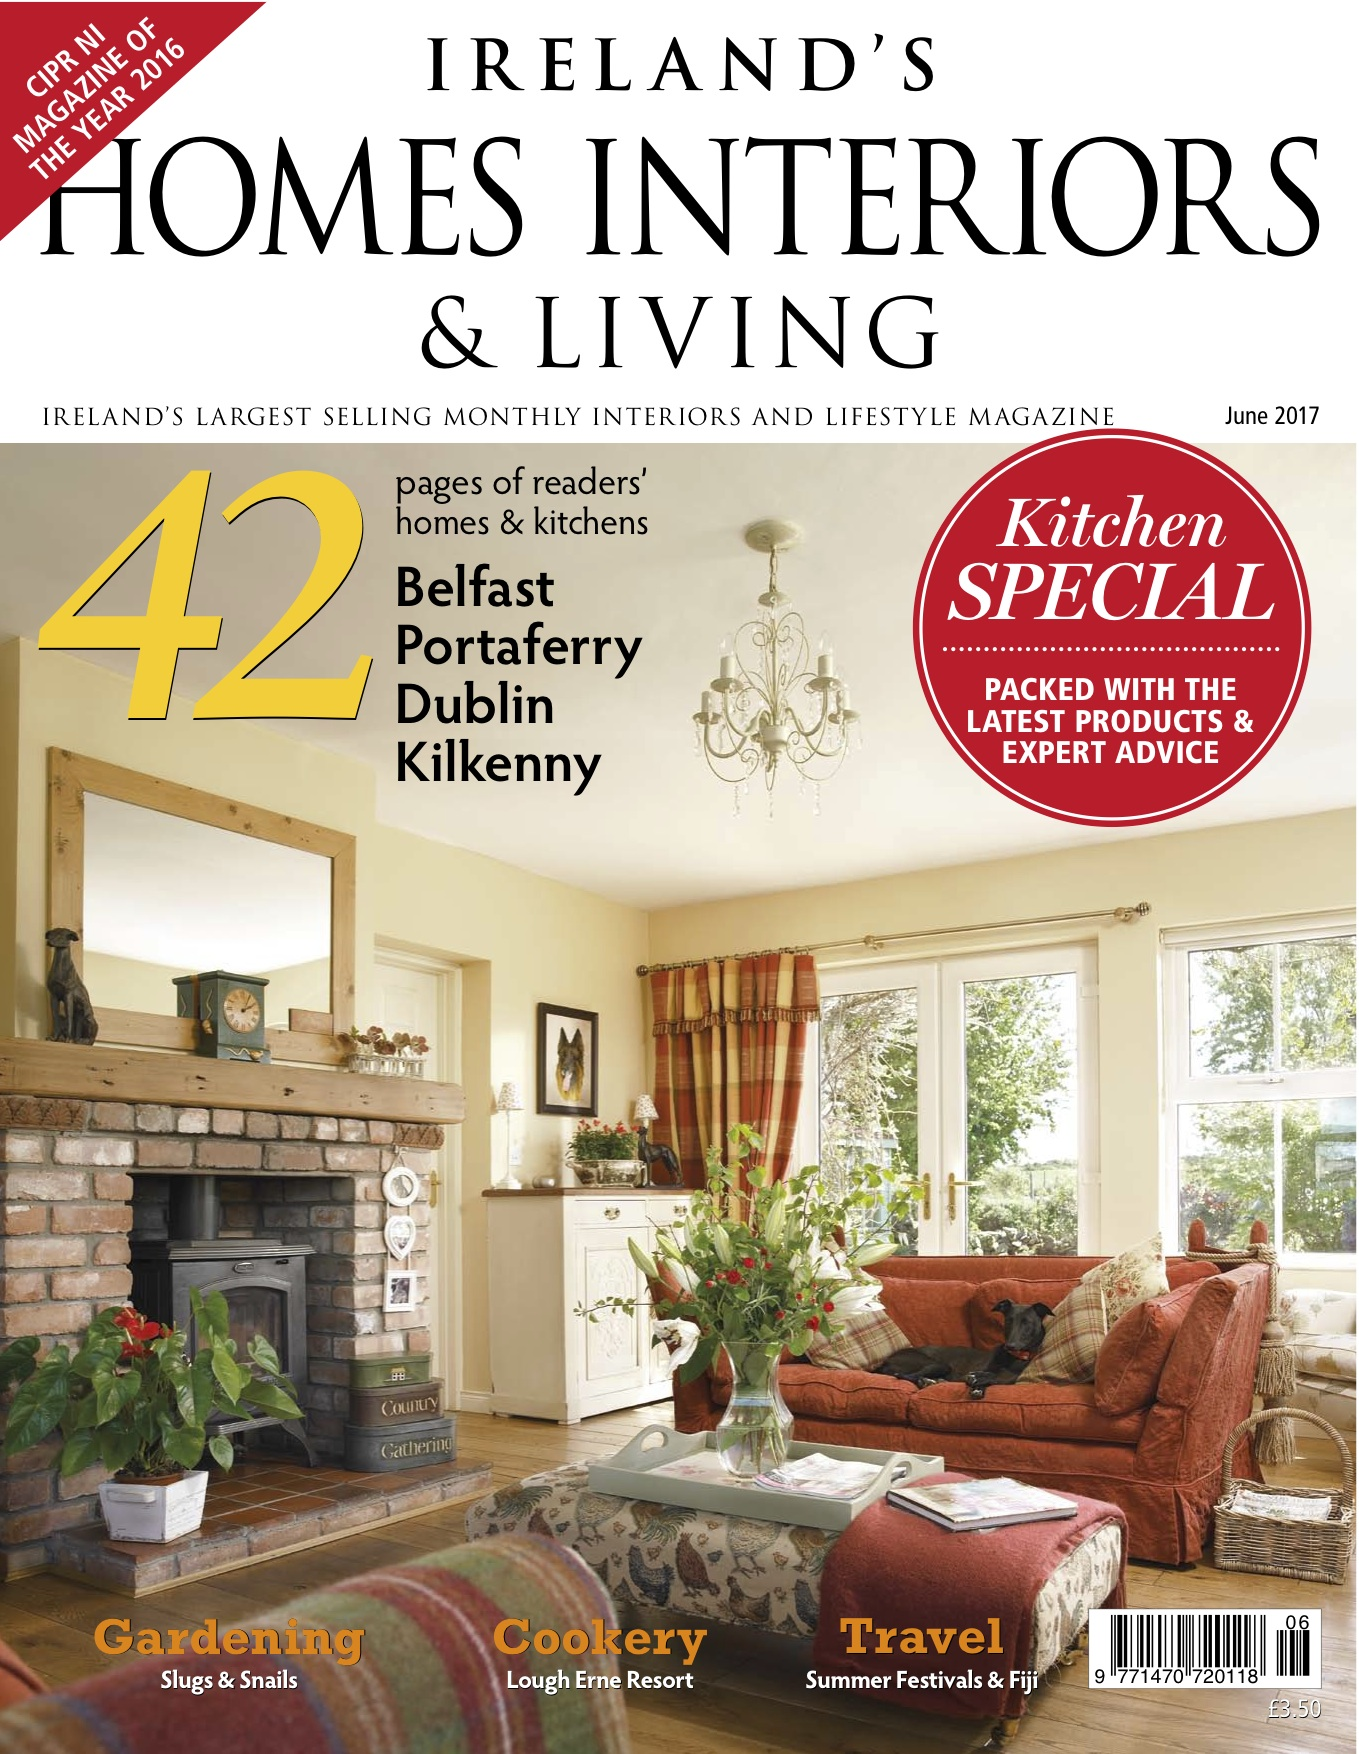 Article in 'Ireland's Homes, Interiors & Living' Magazine